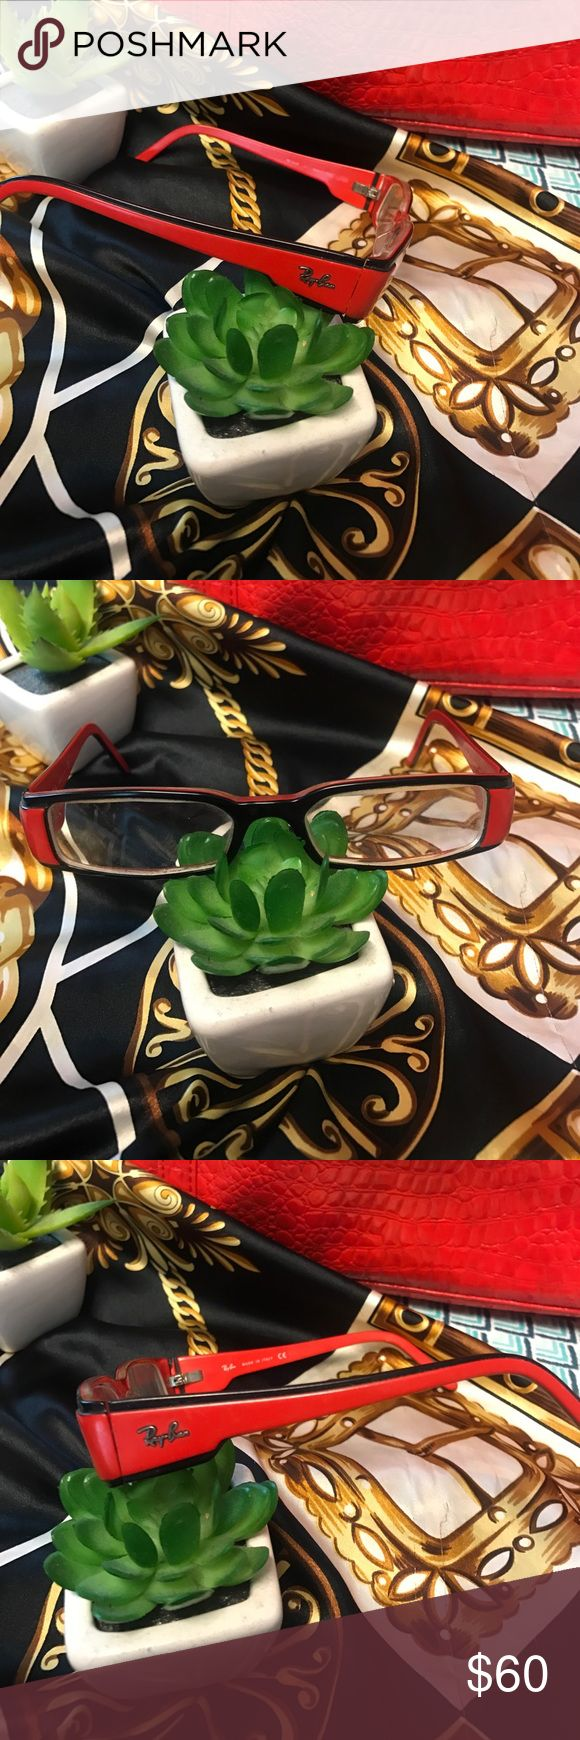 🔥Ray-ban frames Fire engine red and black Ray-ban prescription frames. Purchase and have the lenses replaced with your own prescription and your me ready to kill the fashion game!🔥🔥🔥. I love the sexy secretary look these ones have🥂🥂🥂 Ray-Ban Accessories Glasses